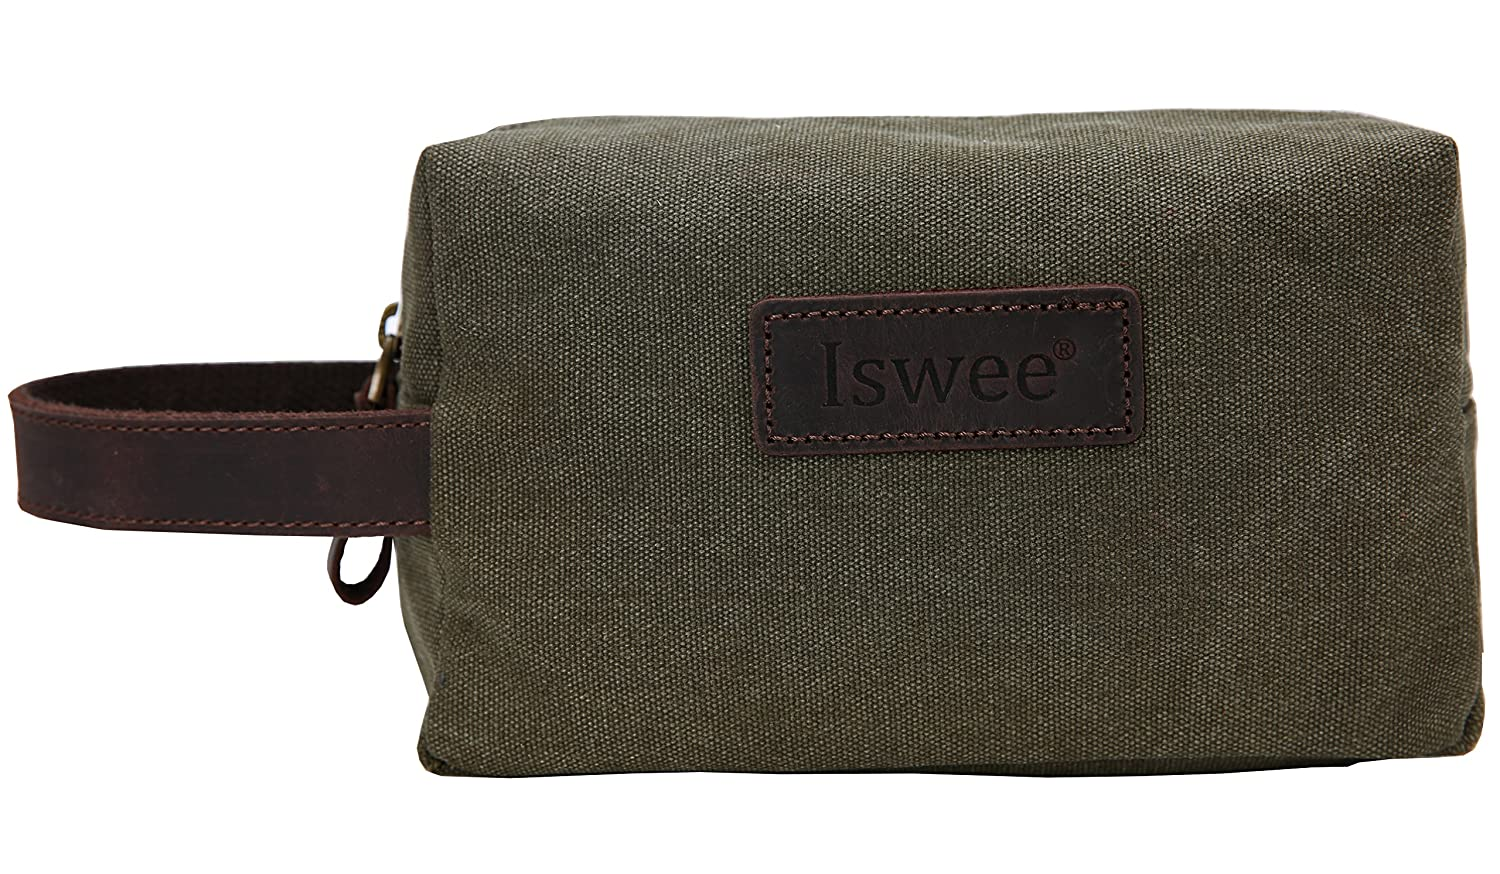 6adc1d869b1d Amazon.com   Canvas Leather Toiletry Bag Iswee Bathroom Shower Organizer  Shaving Doop Kit(Army Green)   Beauty